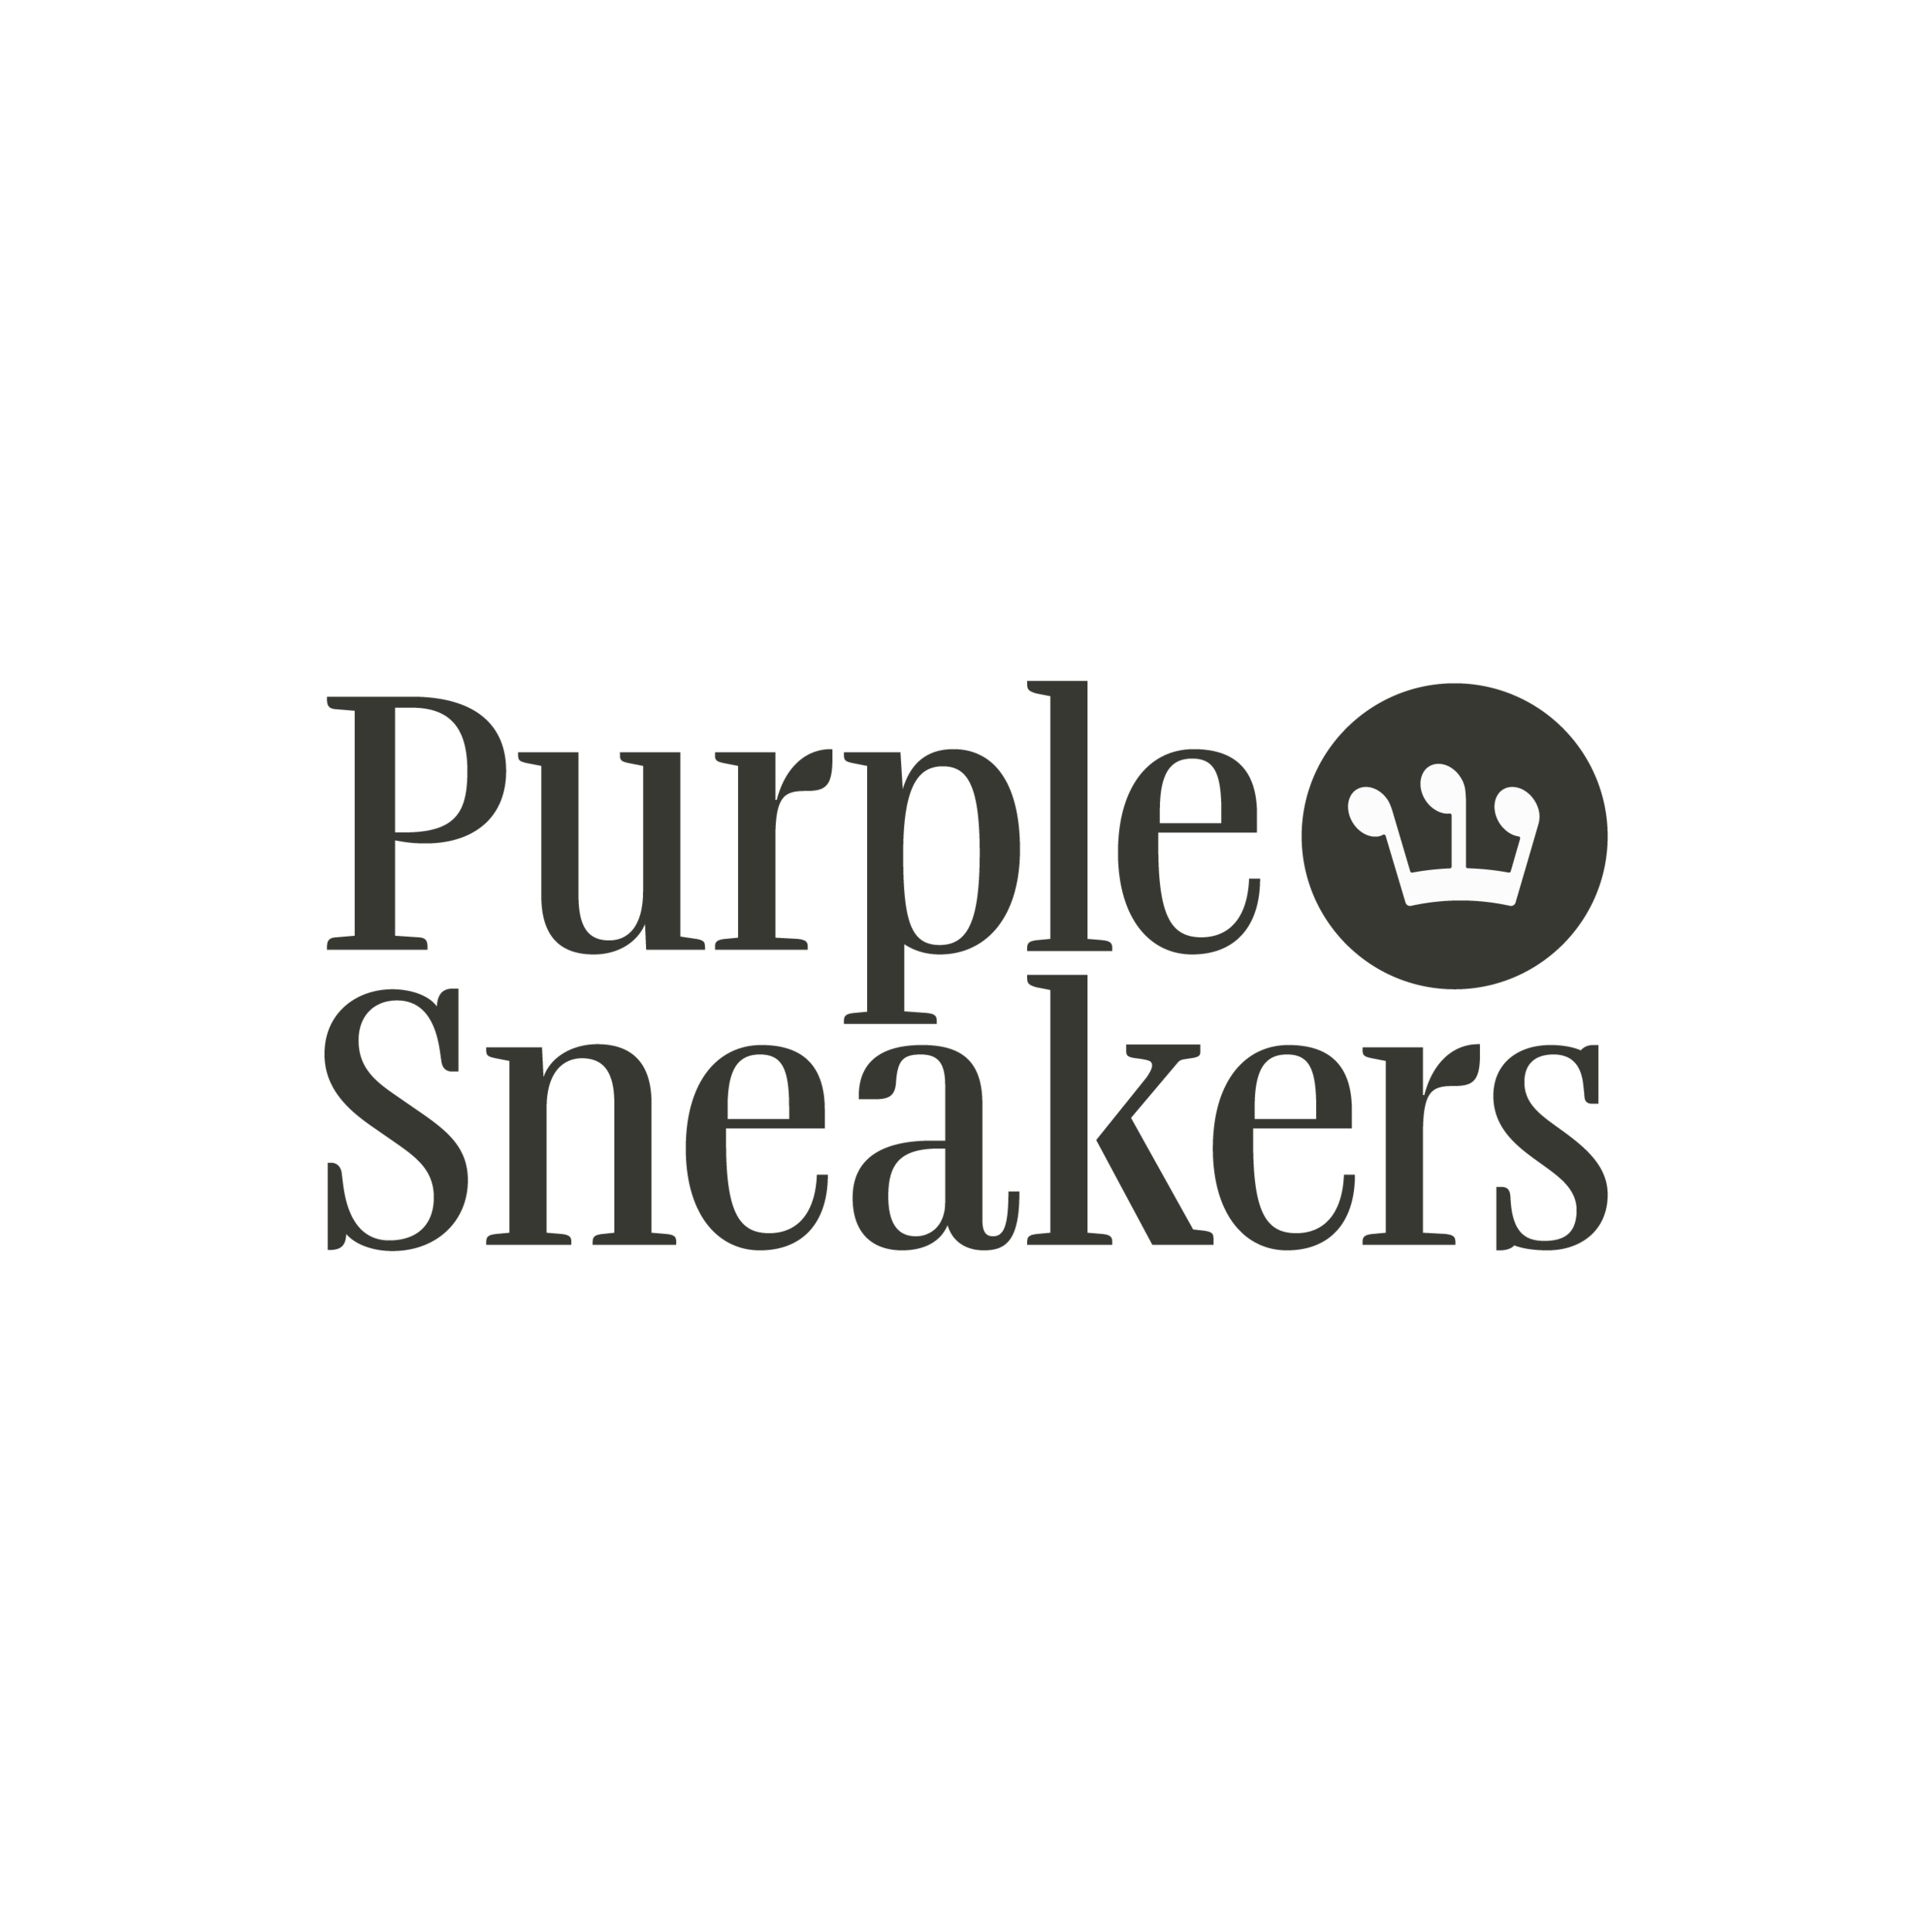 PurpleSneakers@2x.png